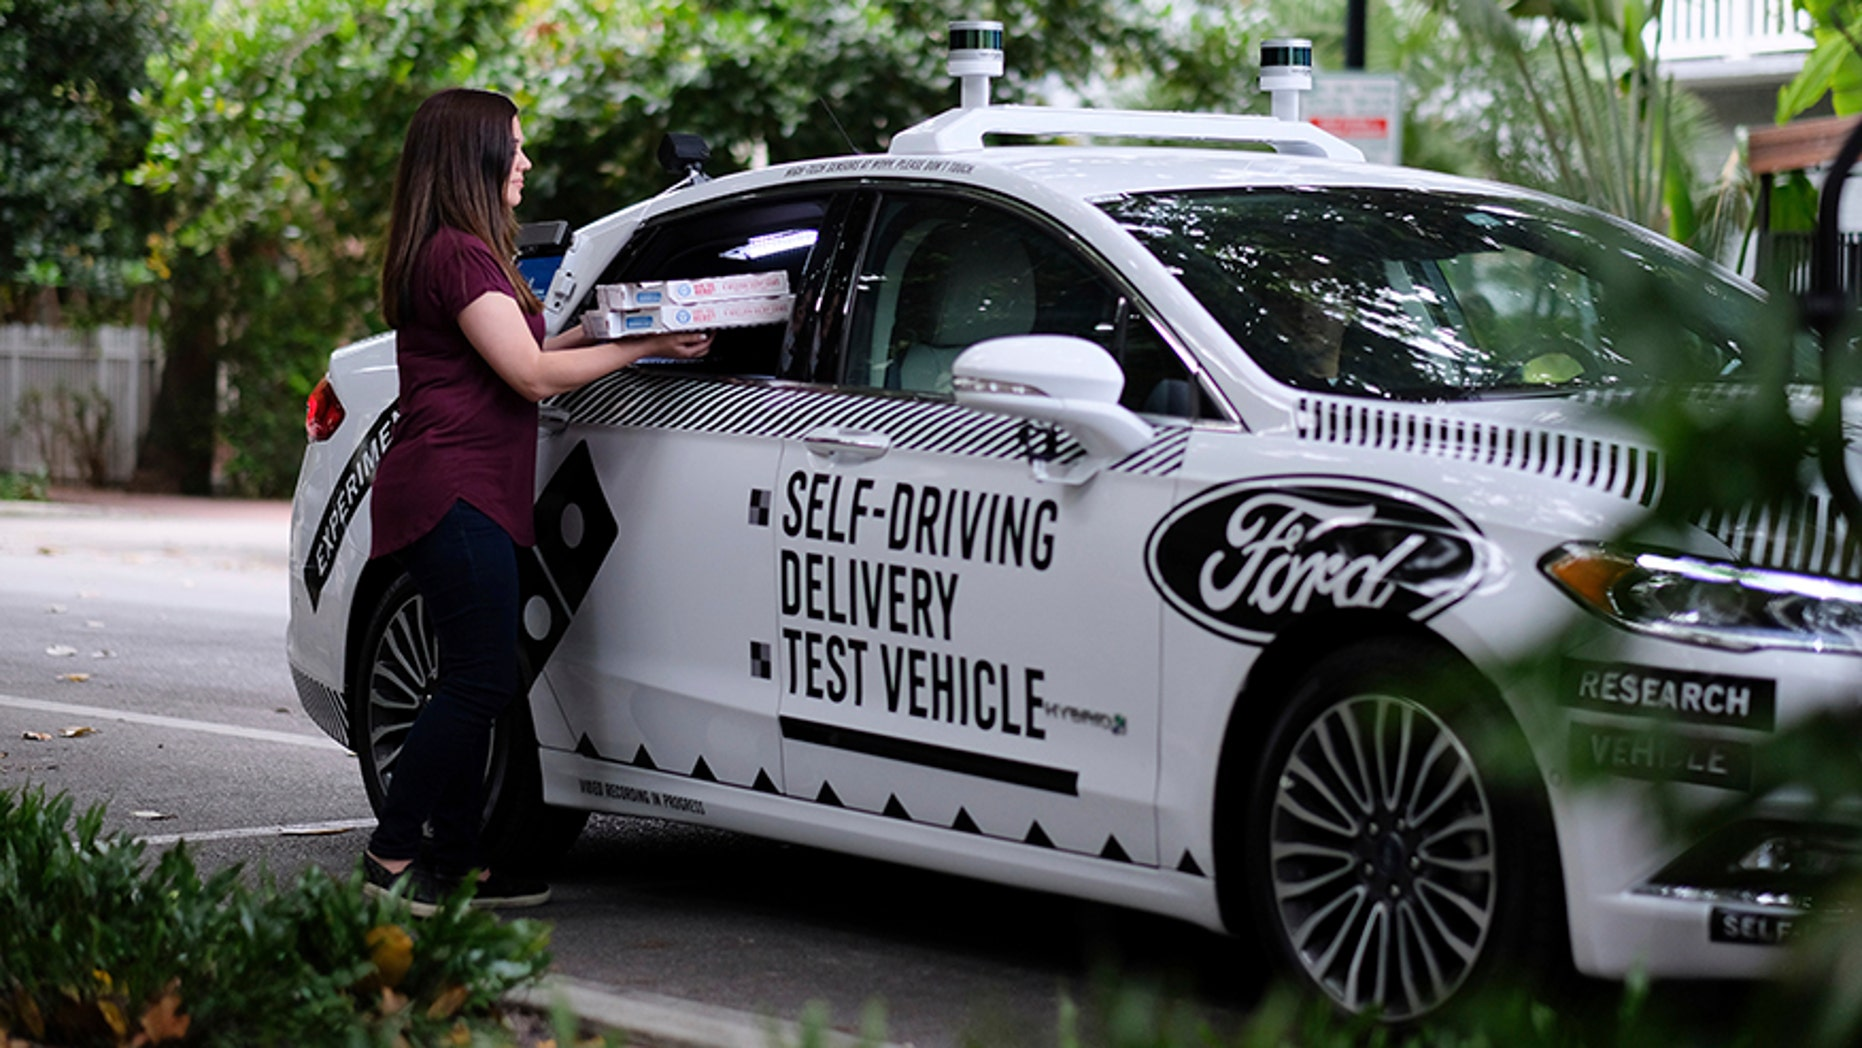 This undated image provided by Ford Motor Co. shows a self-driving vehicle from Ford and partner Domino's Pizza in Miami, Fla. Ford is making Miami-Dade County its new test bed for self-driving vehicles. Ford and its partners, including Domino's Pizza and ride-hailing company Lyft — are starting pilot programs now to see how consumers react to autonomous vehicles. (Ford Motor Co. via AP)